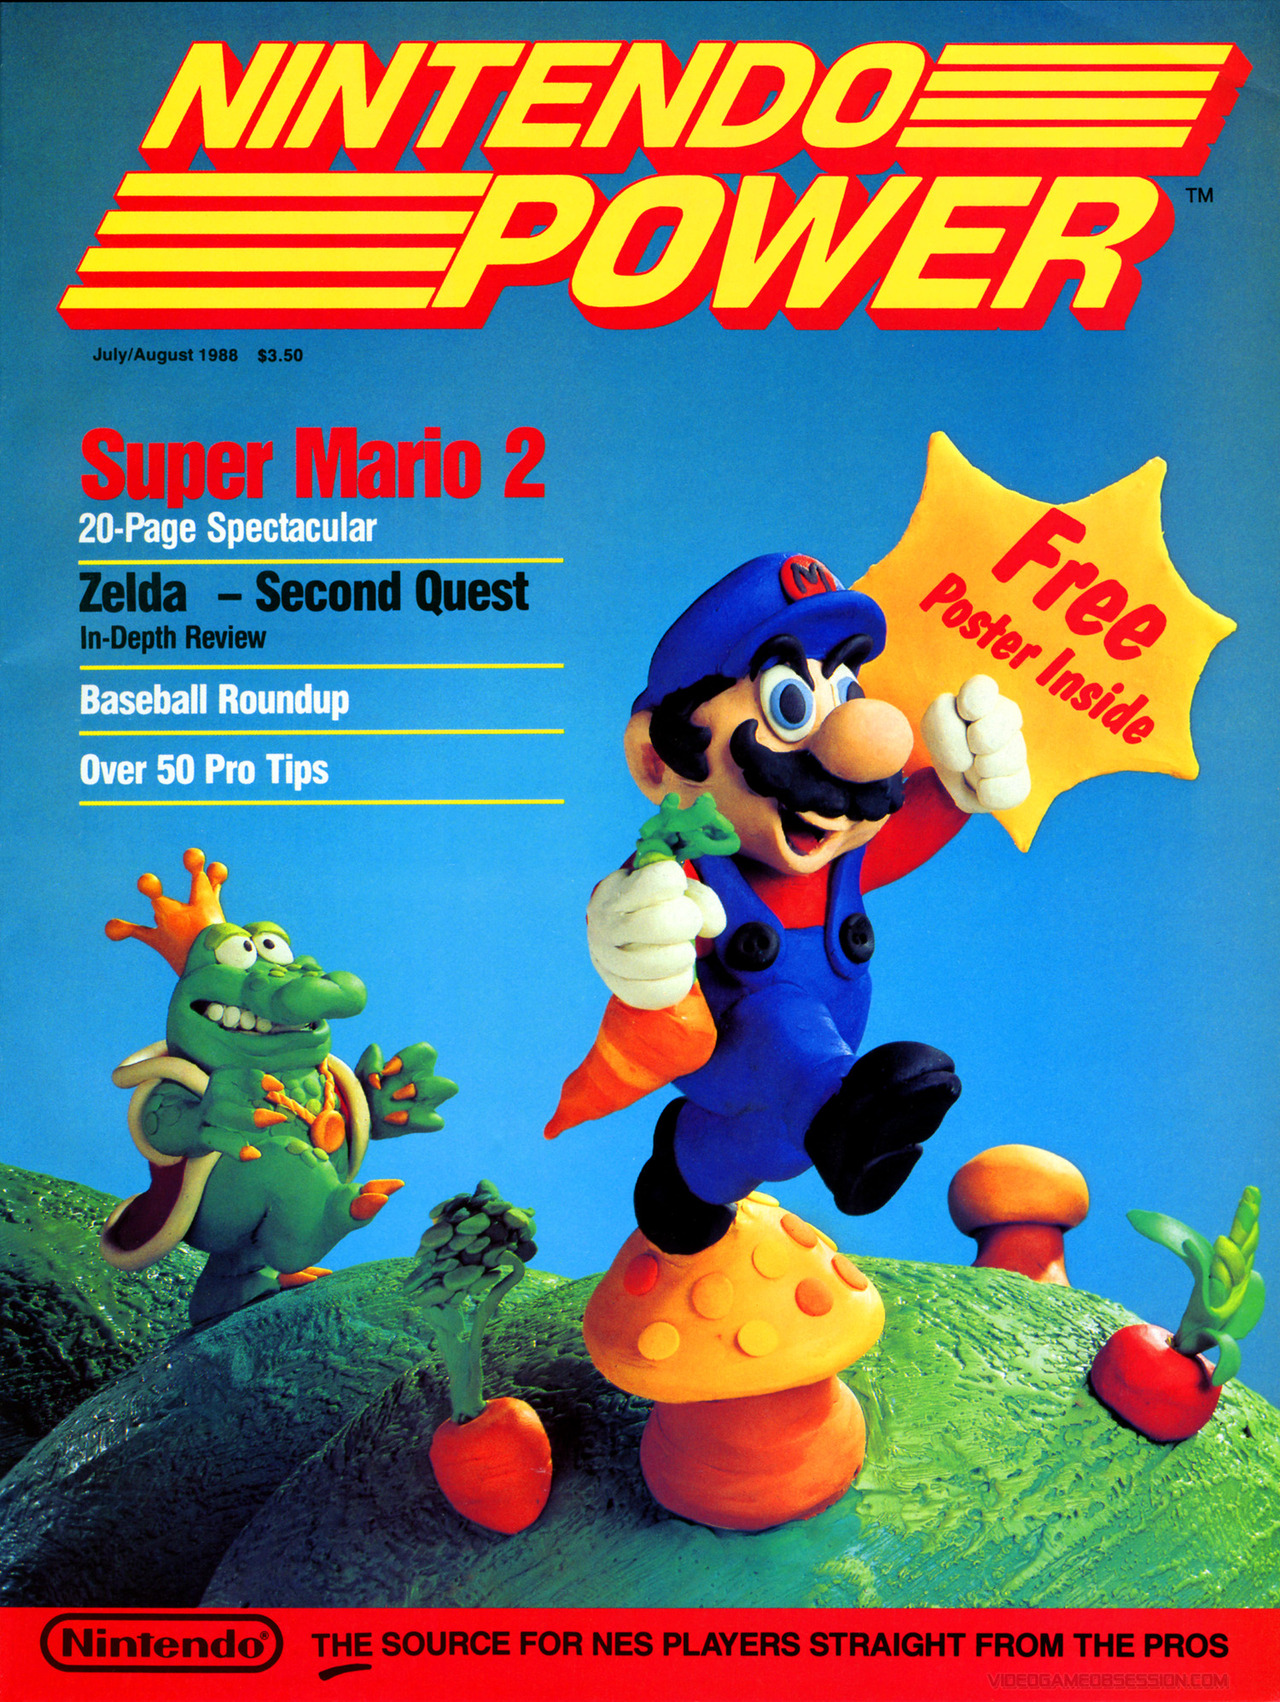 Nintendo Power Issue 1 Review: It All Started Here - Super Mario Bros  2